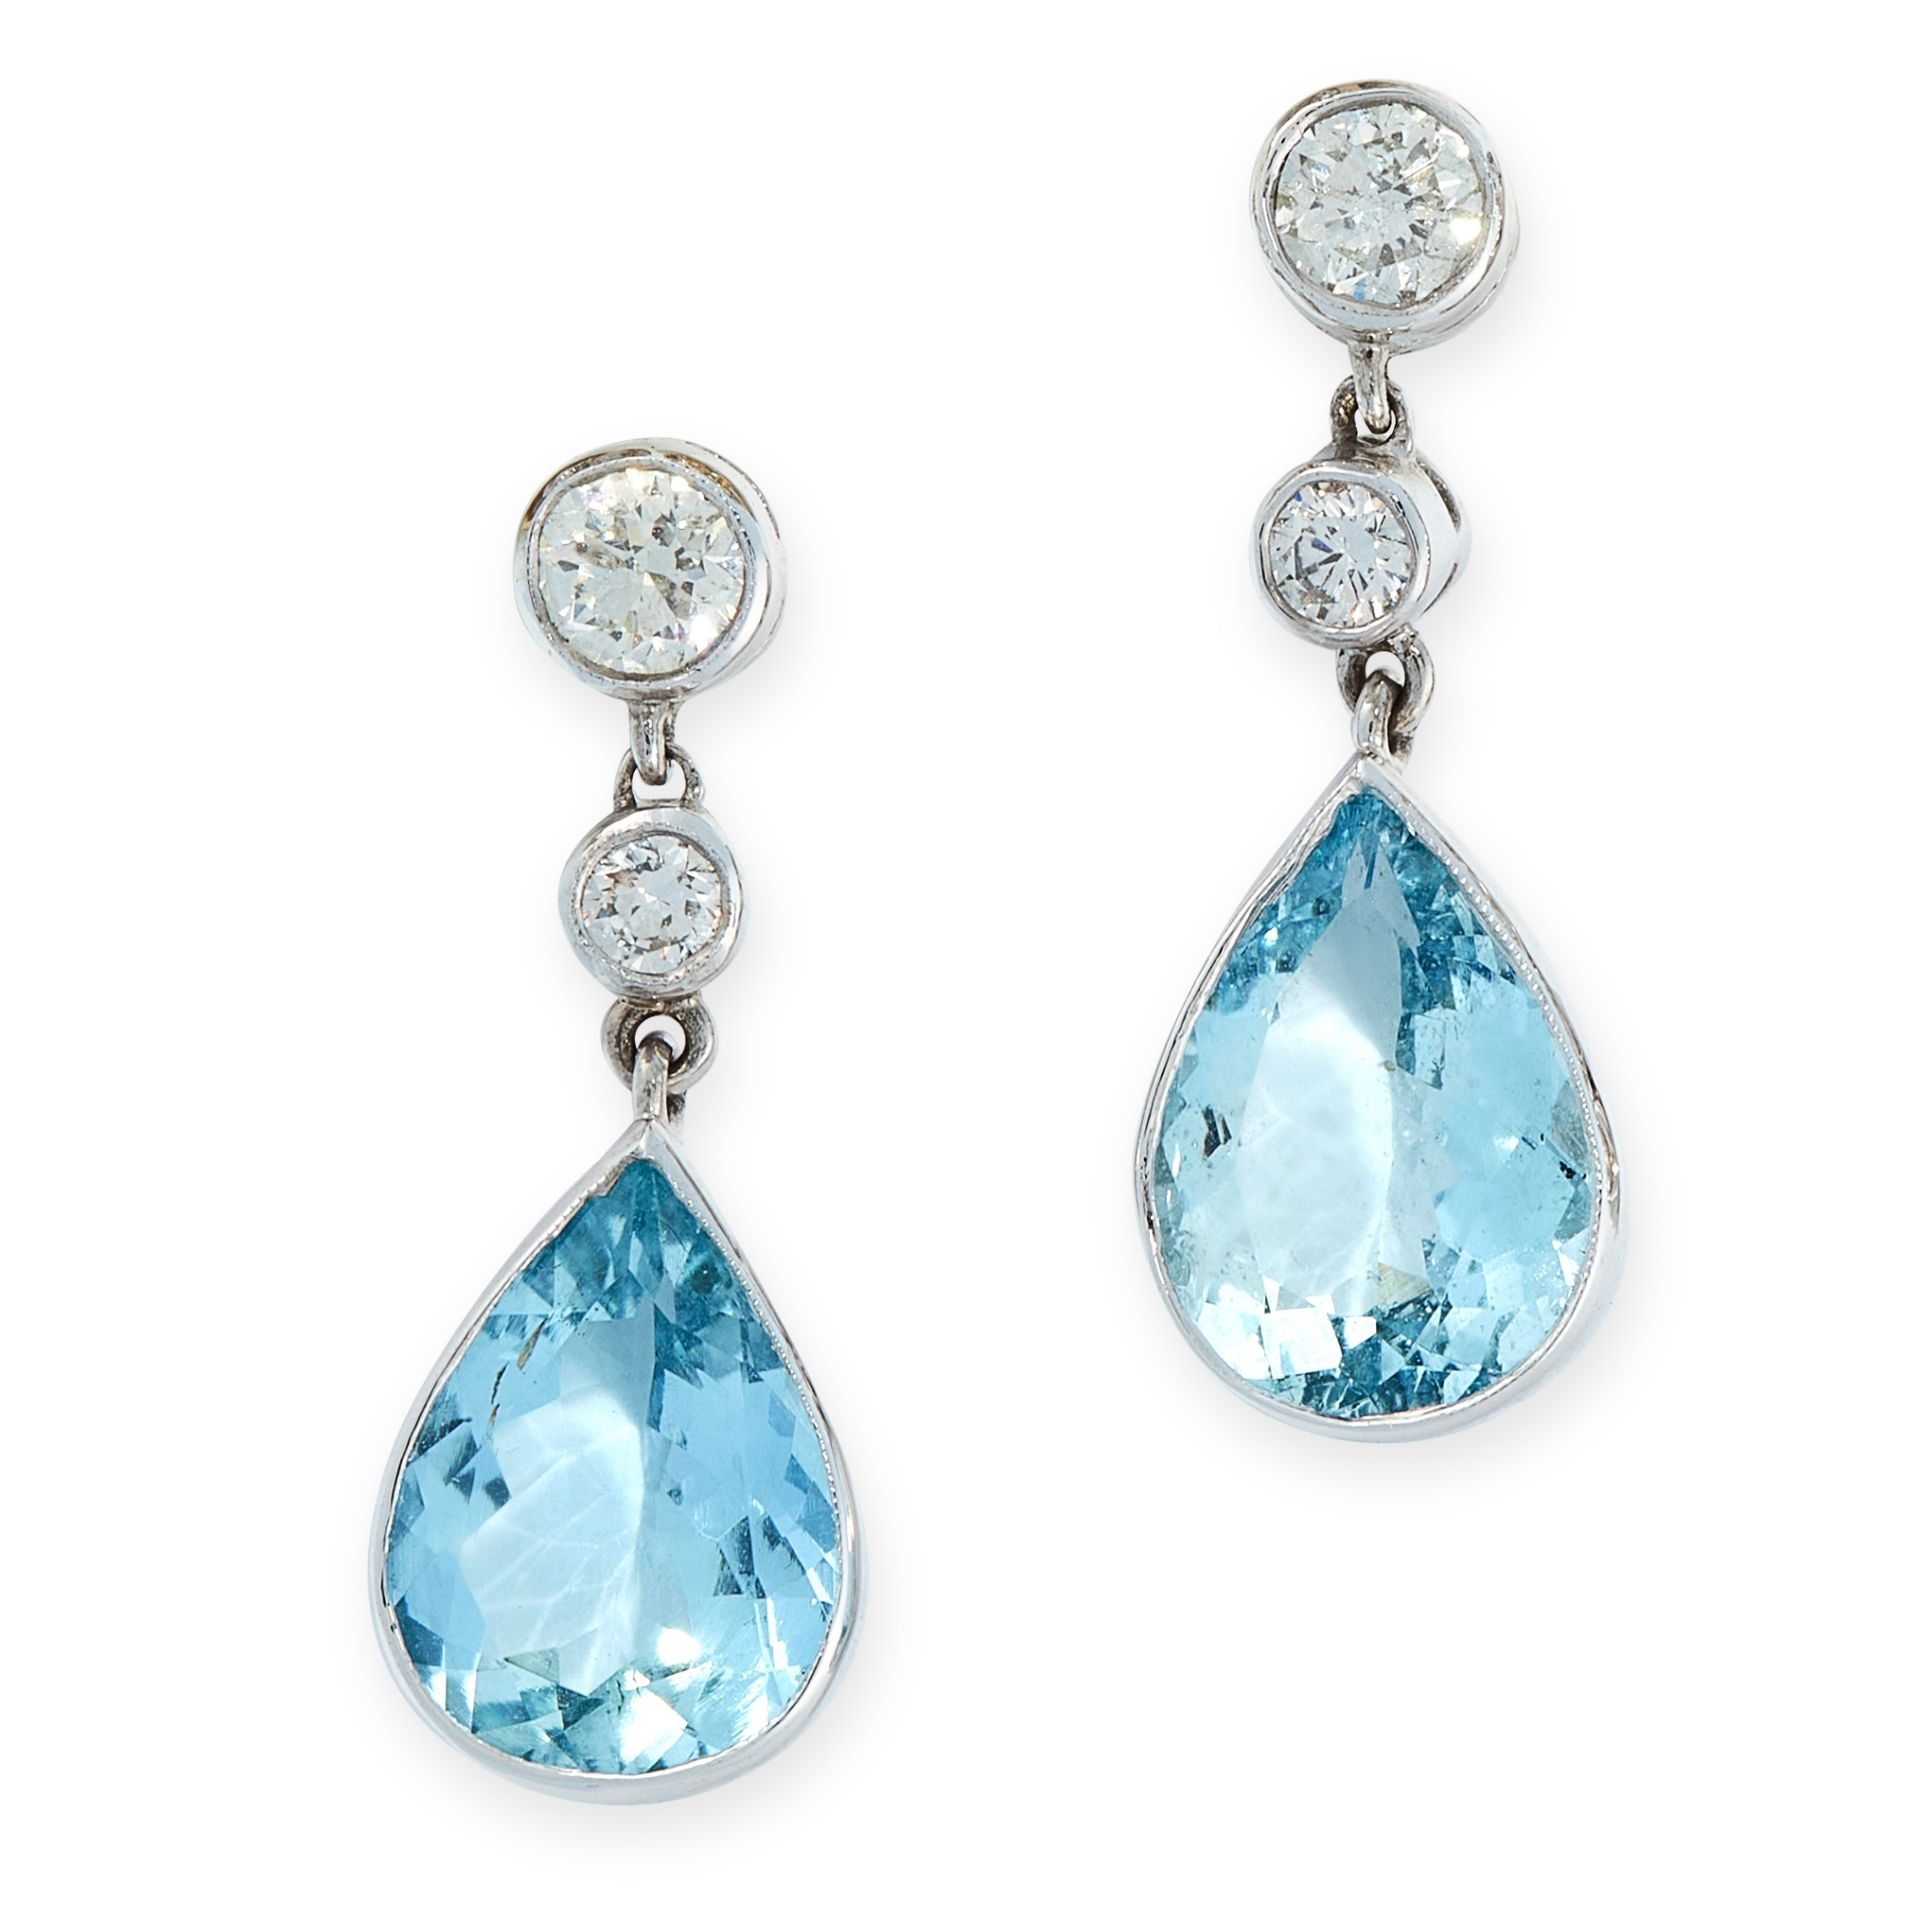 A PAIR OF AQUAMARINE AND DIAMOND DROP EARRINGS in 18ct white gold, each set with a pear cut